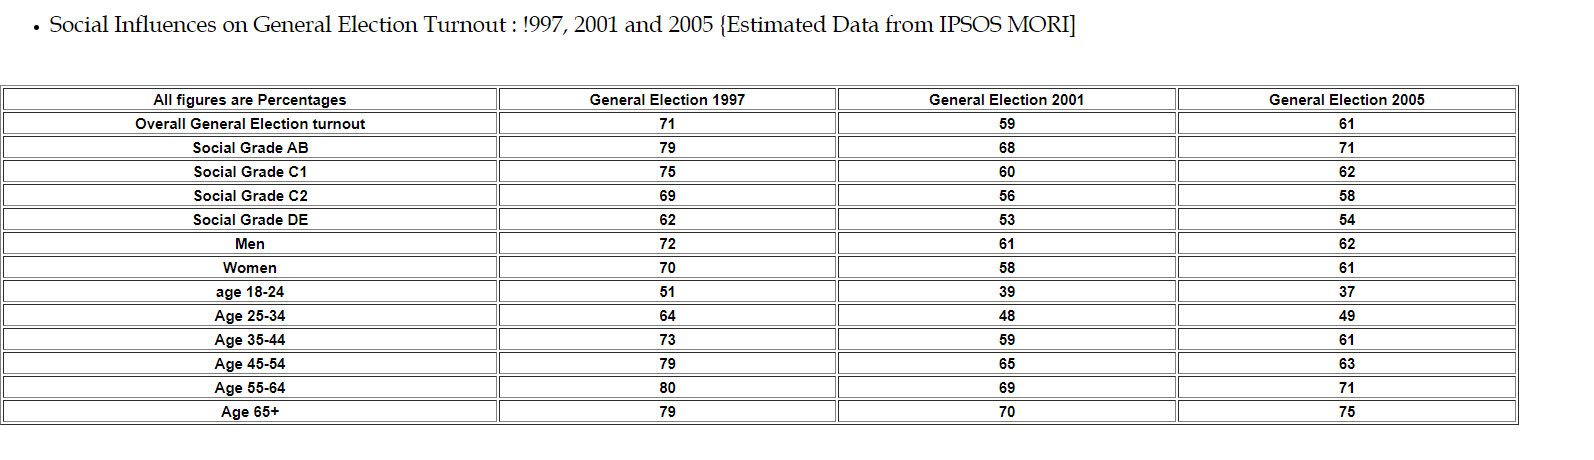 Electioncomp970105-Social-Influences-on-General-Election-Turnout-997-2001-and-2005-Estimated-Data-from-IPSOS-MORI